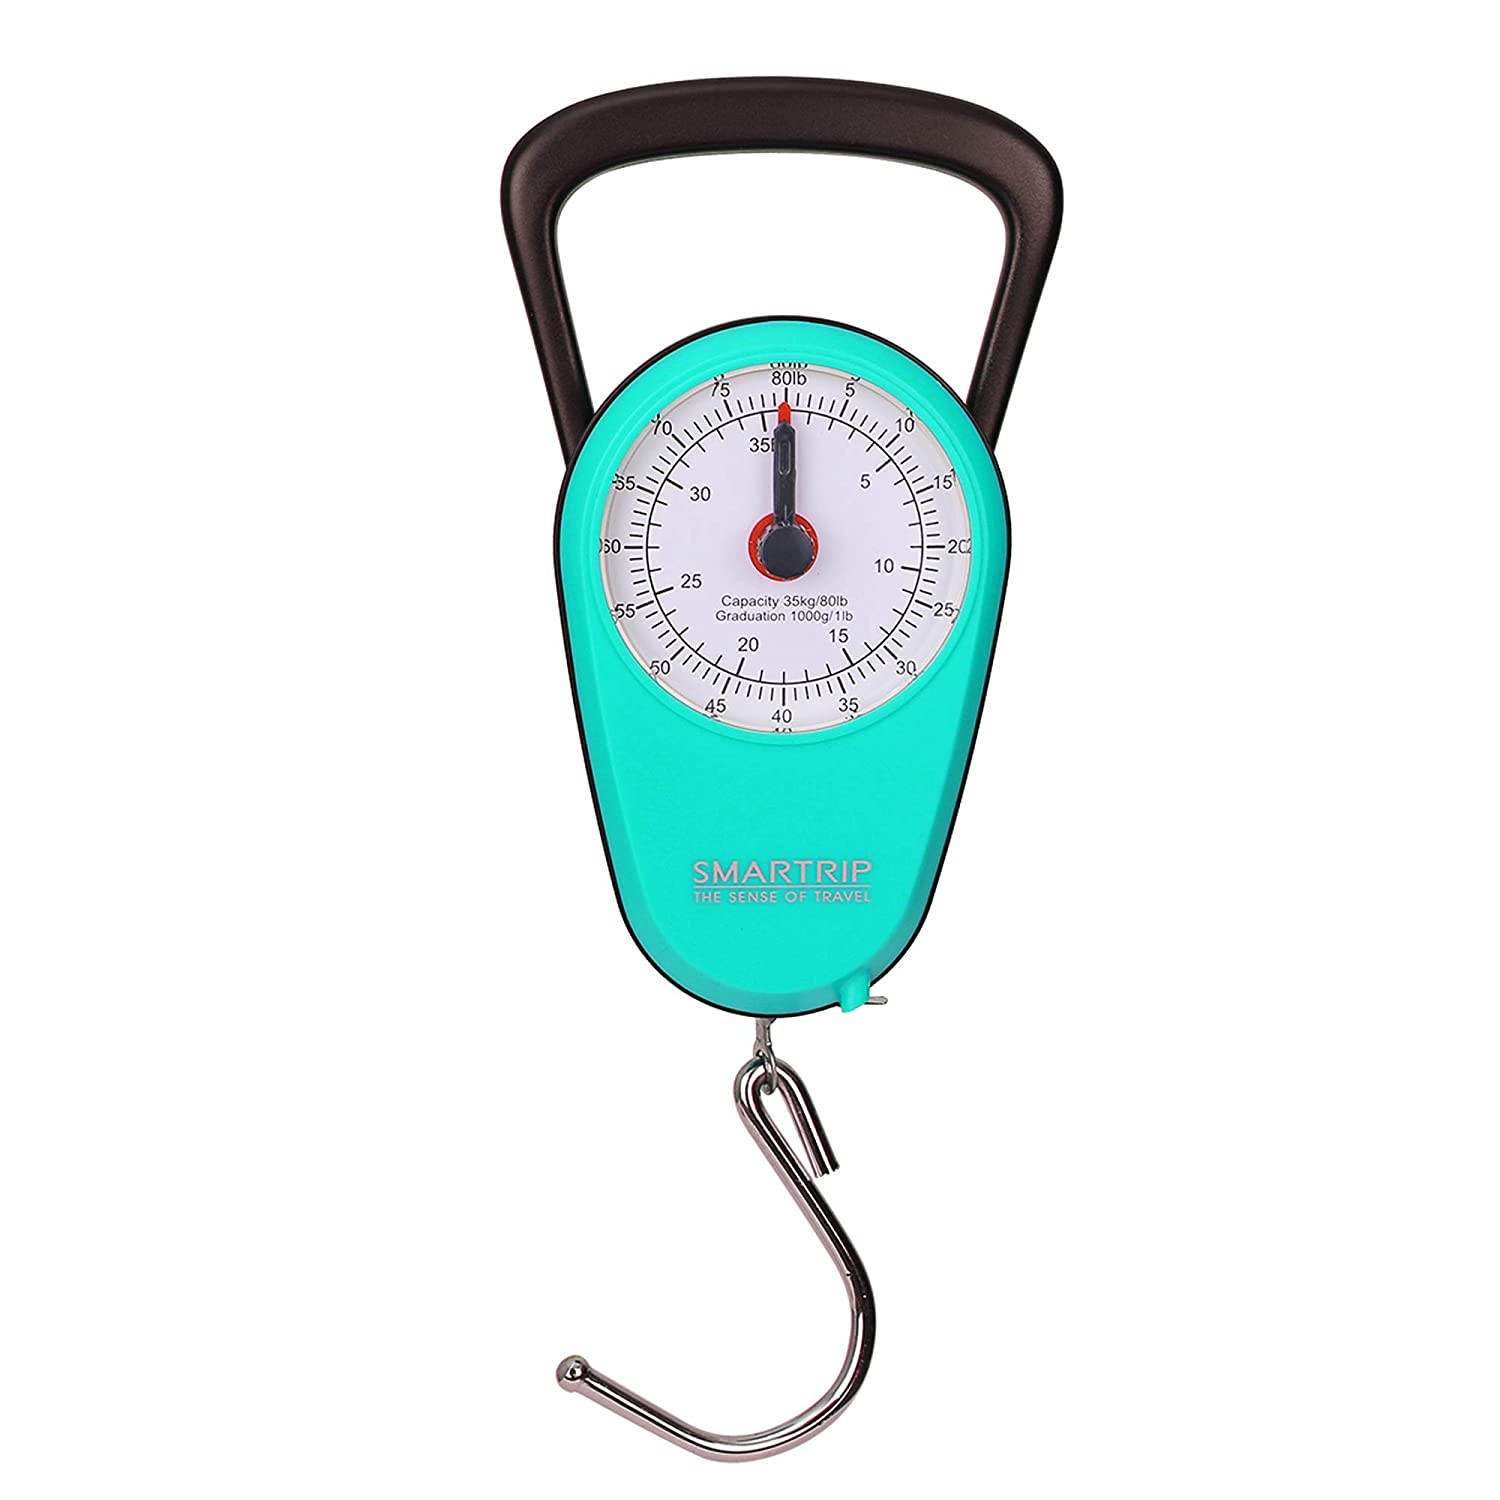 AccuDial No Batteries Accurate Easy Reading Analog Compact Handheld Luggage Scales